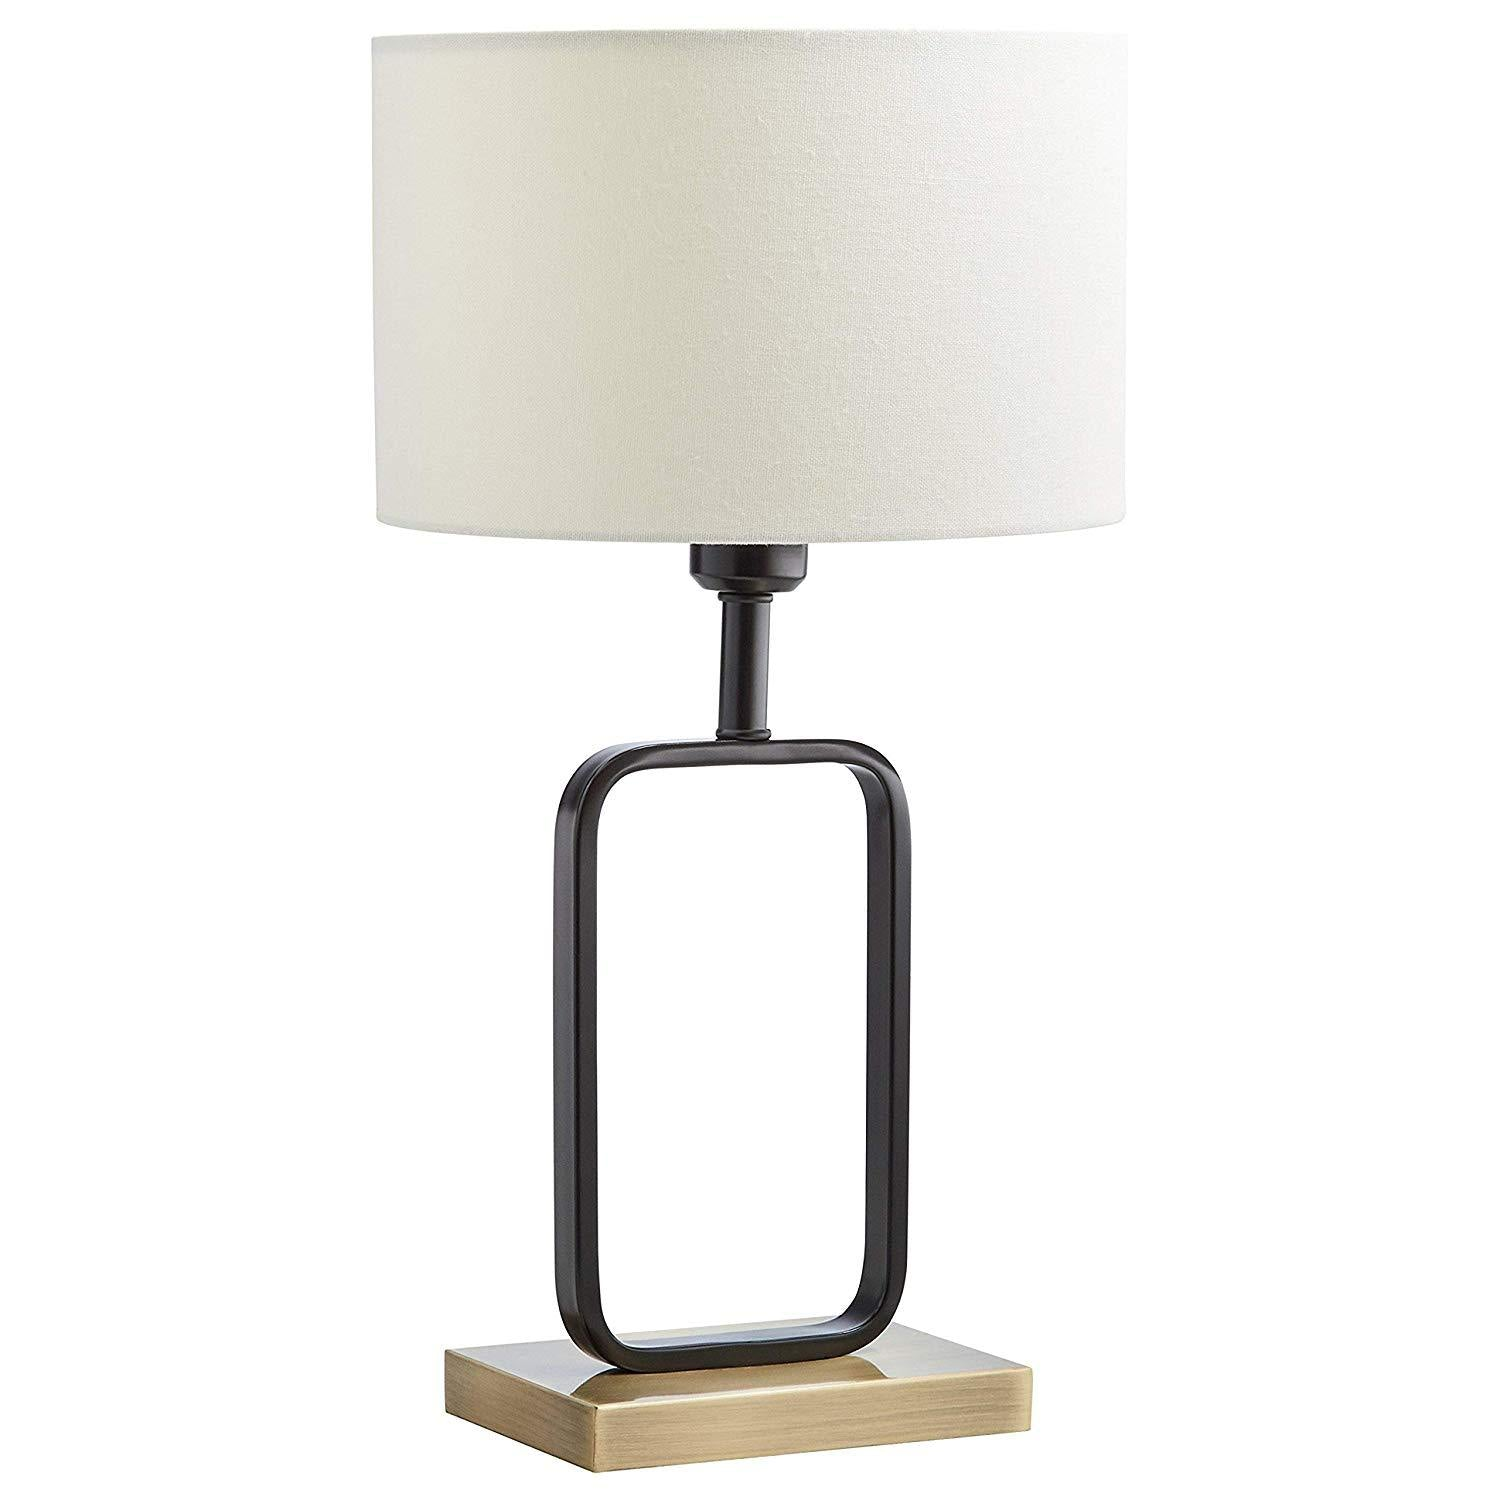 Stone & Beam Modern Metal Frame Living Room Table Lamp With Light Bulb - 7.5 x 5 x 20.5 Inches, Black with White Shade